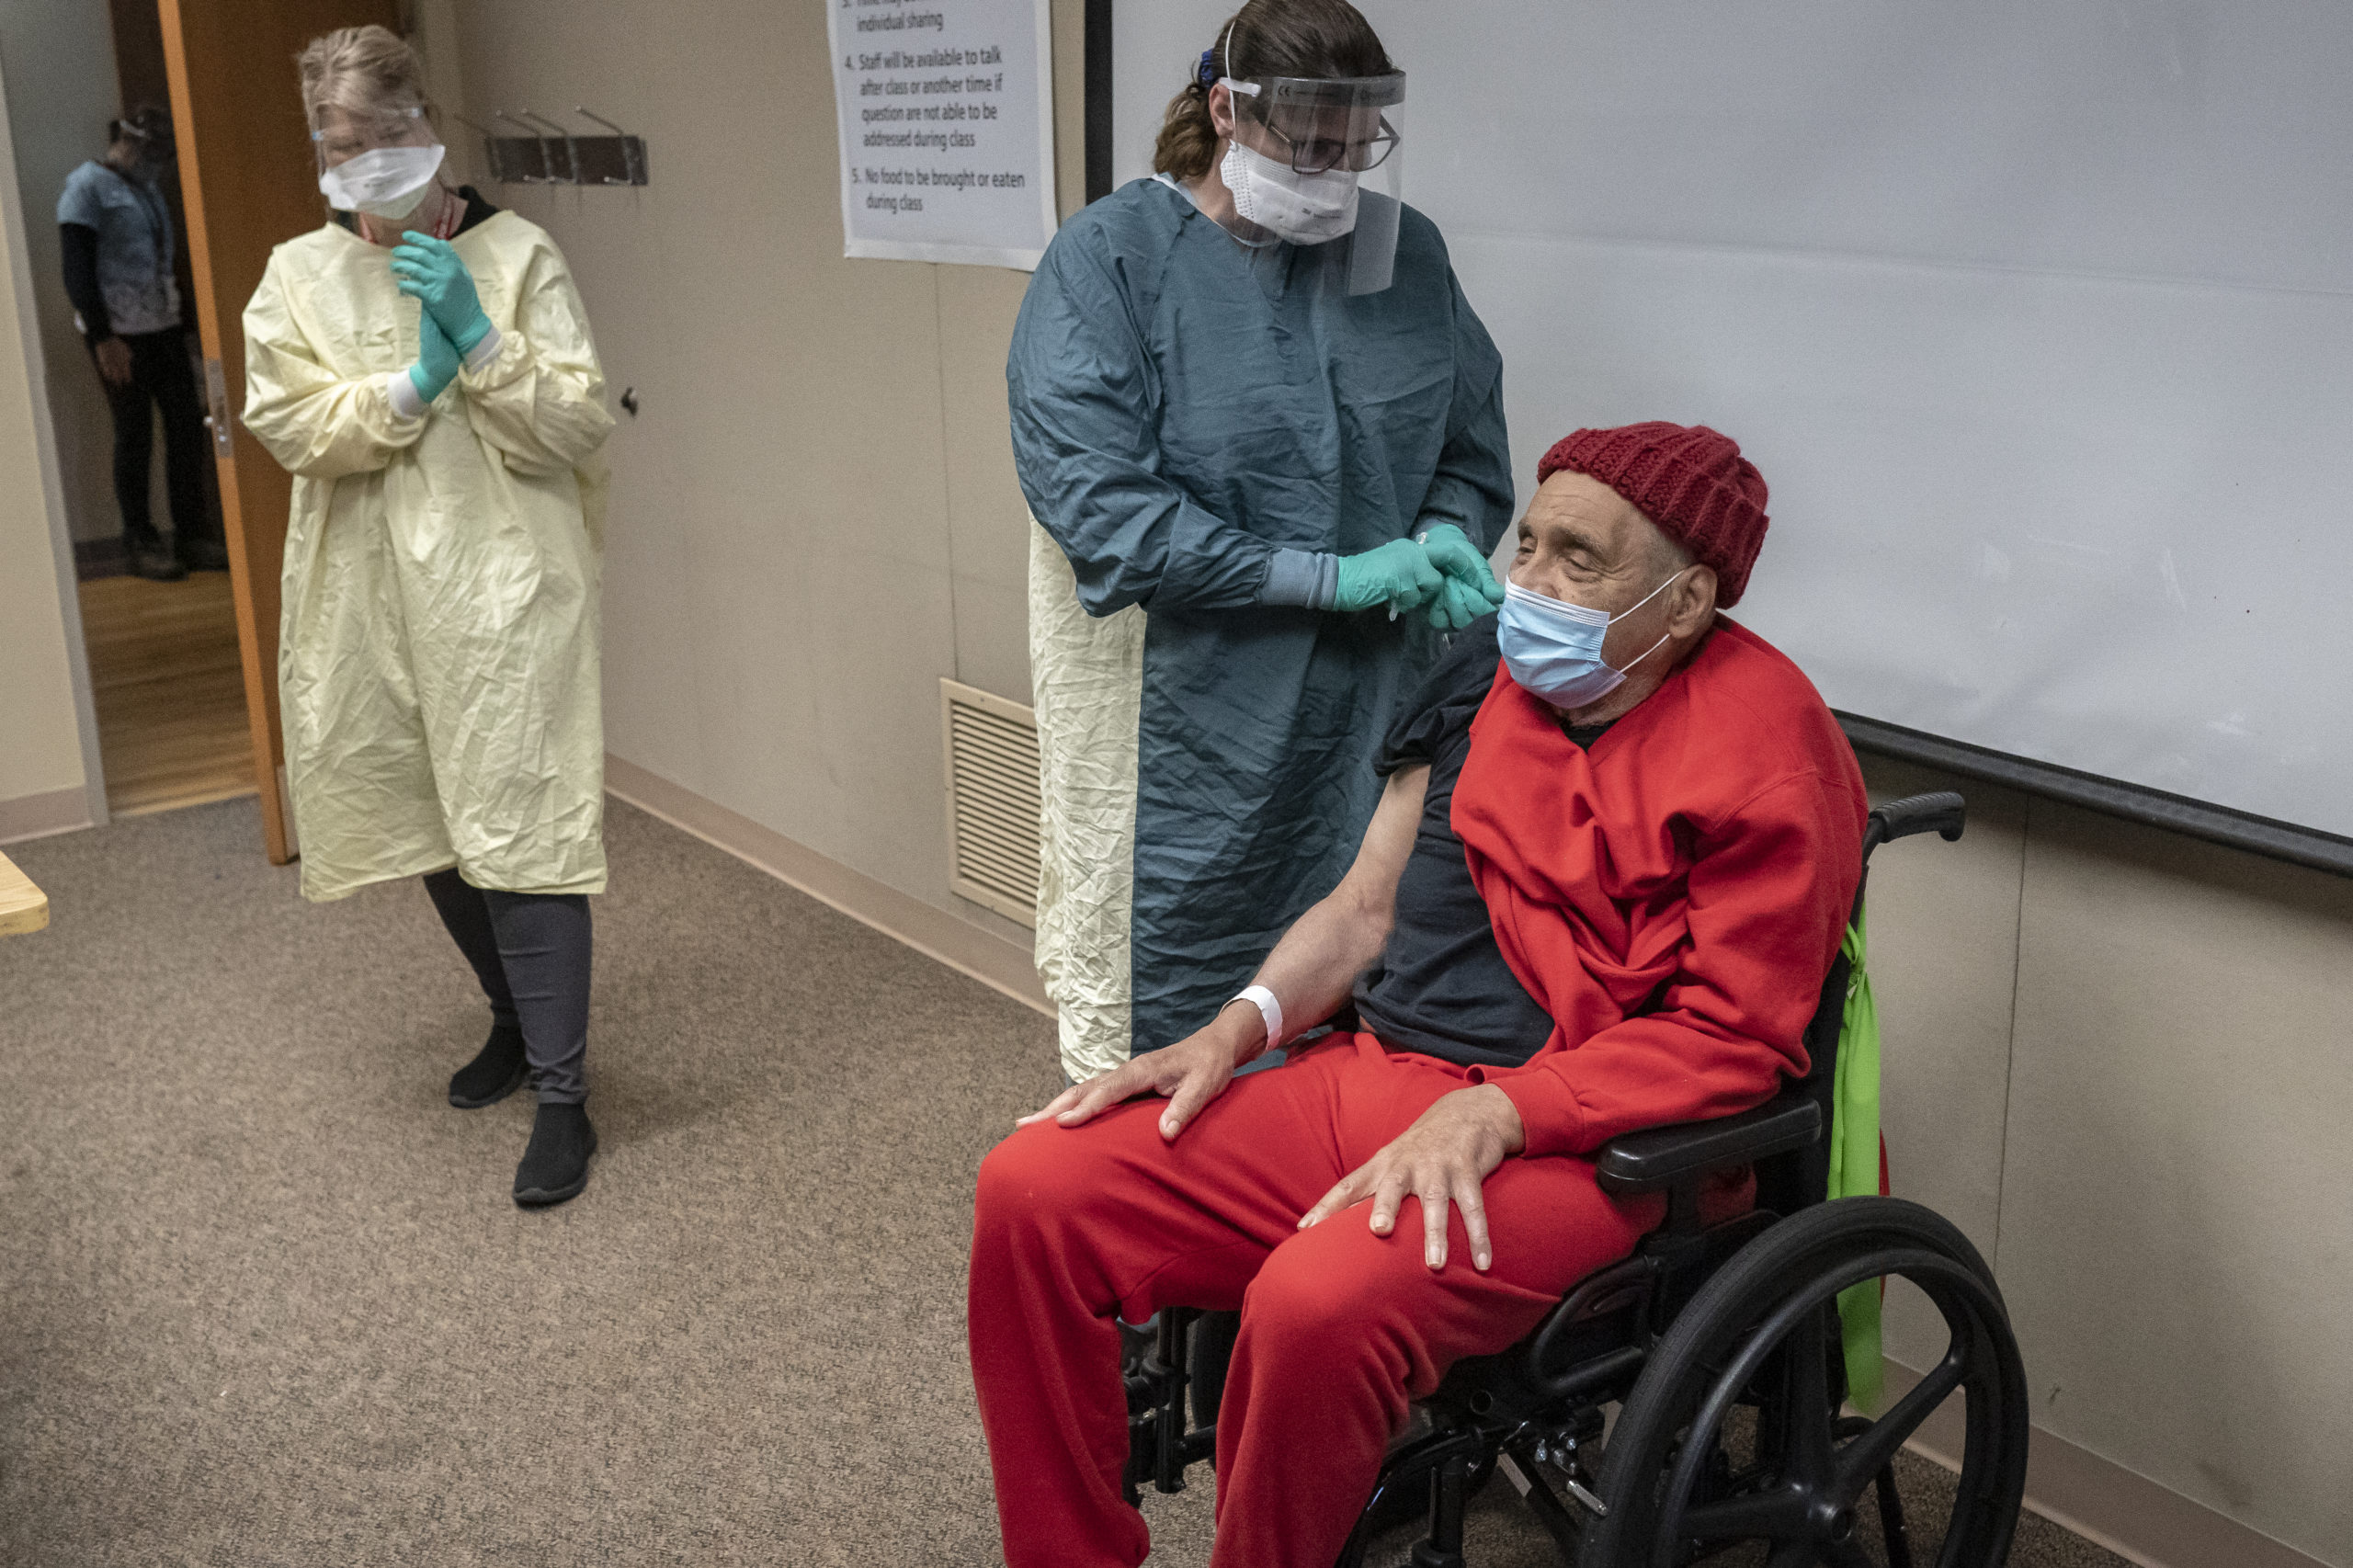 Medical staff applaud as Vietnam War Army veteran James Curry, 78, receives a coronavirus vaccination at a Veterans Affairs long-term care facility on Thursday in Washington. (Nathan Howard/Getty Images)